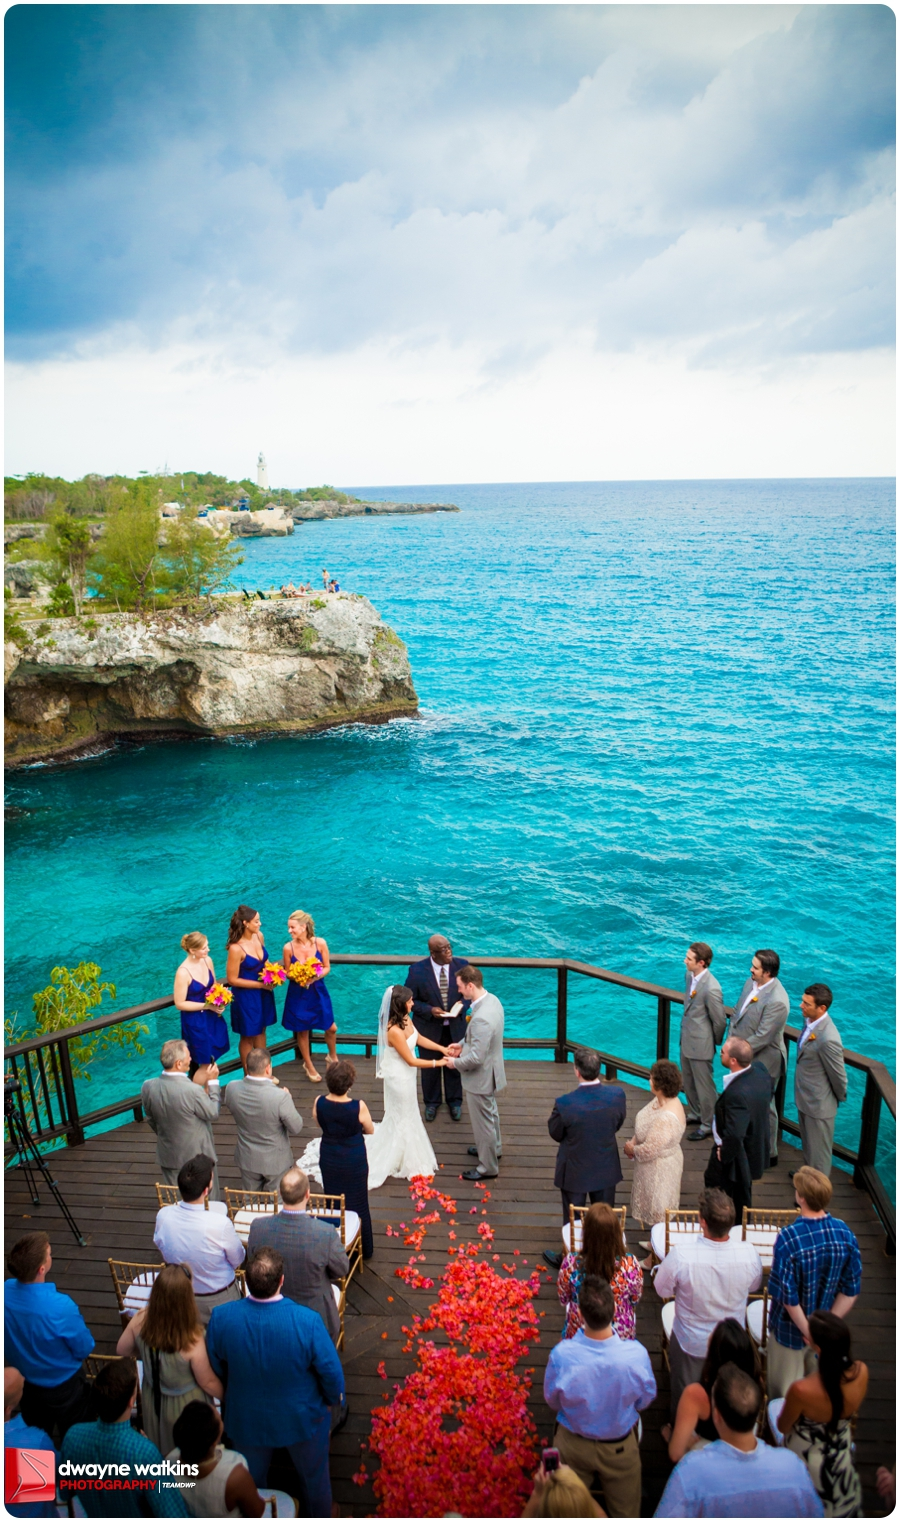 10 places to have your destination wedding culture for Destination wedding location ideas